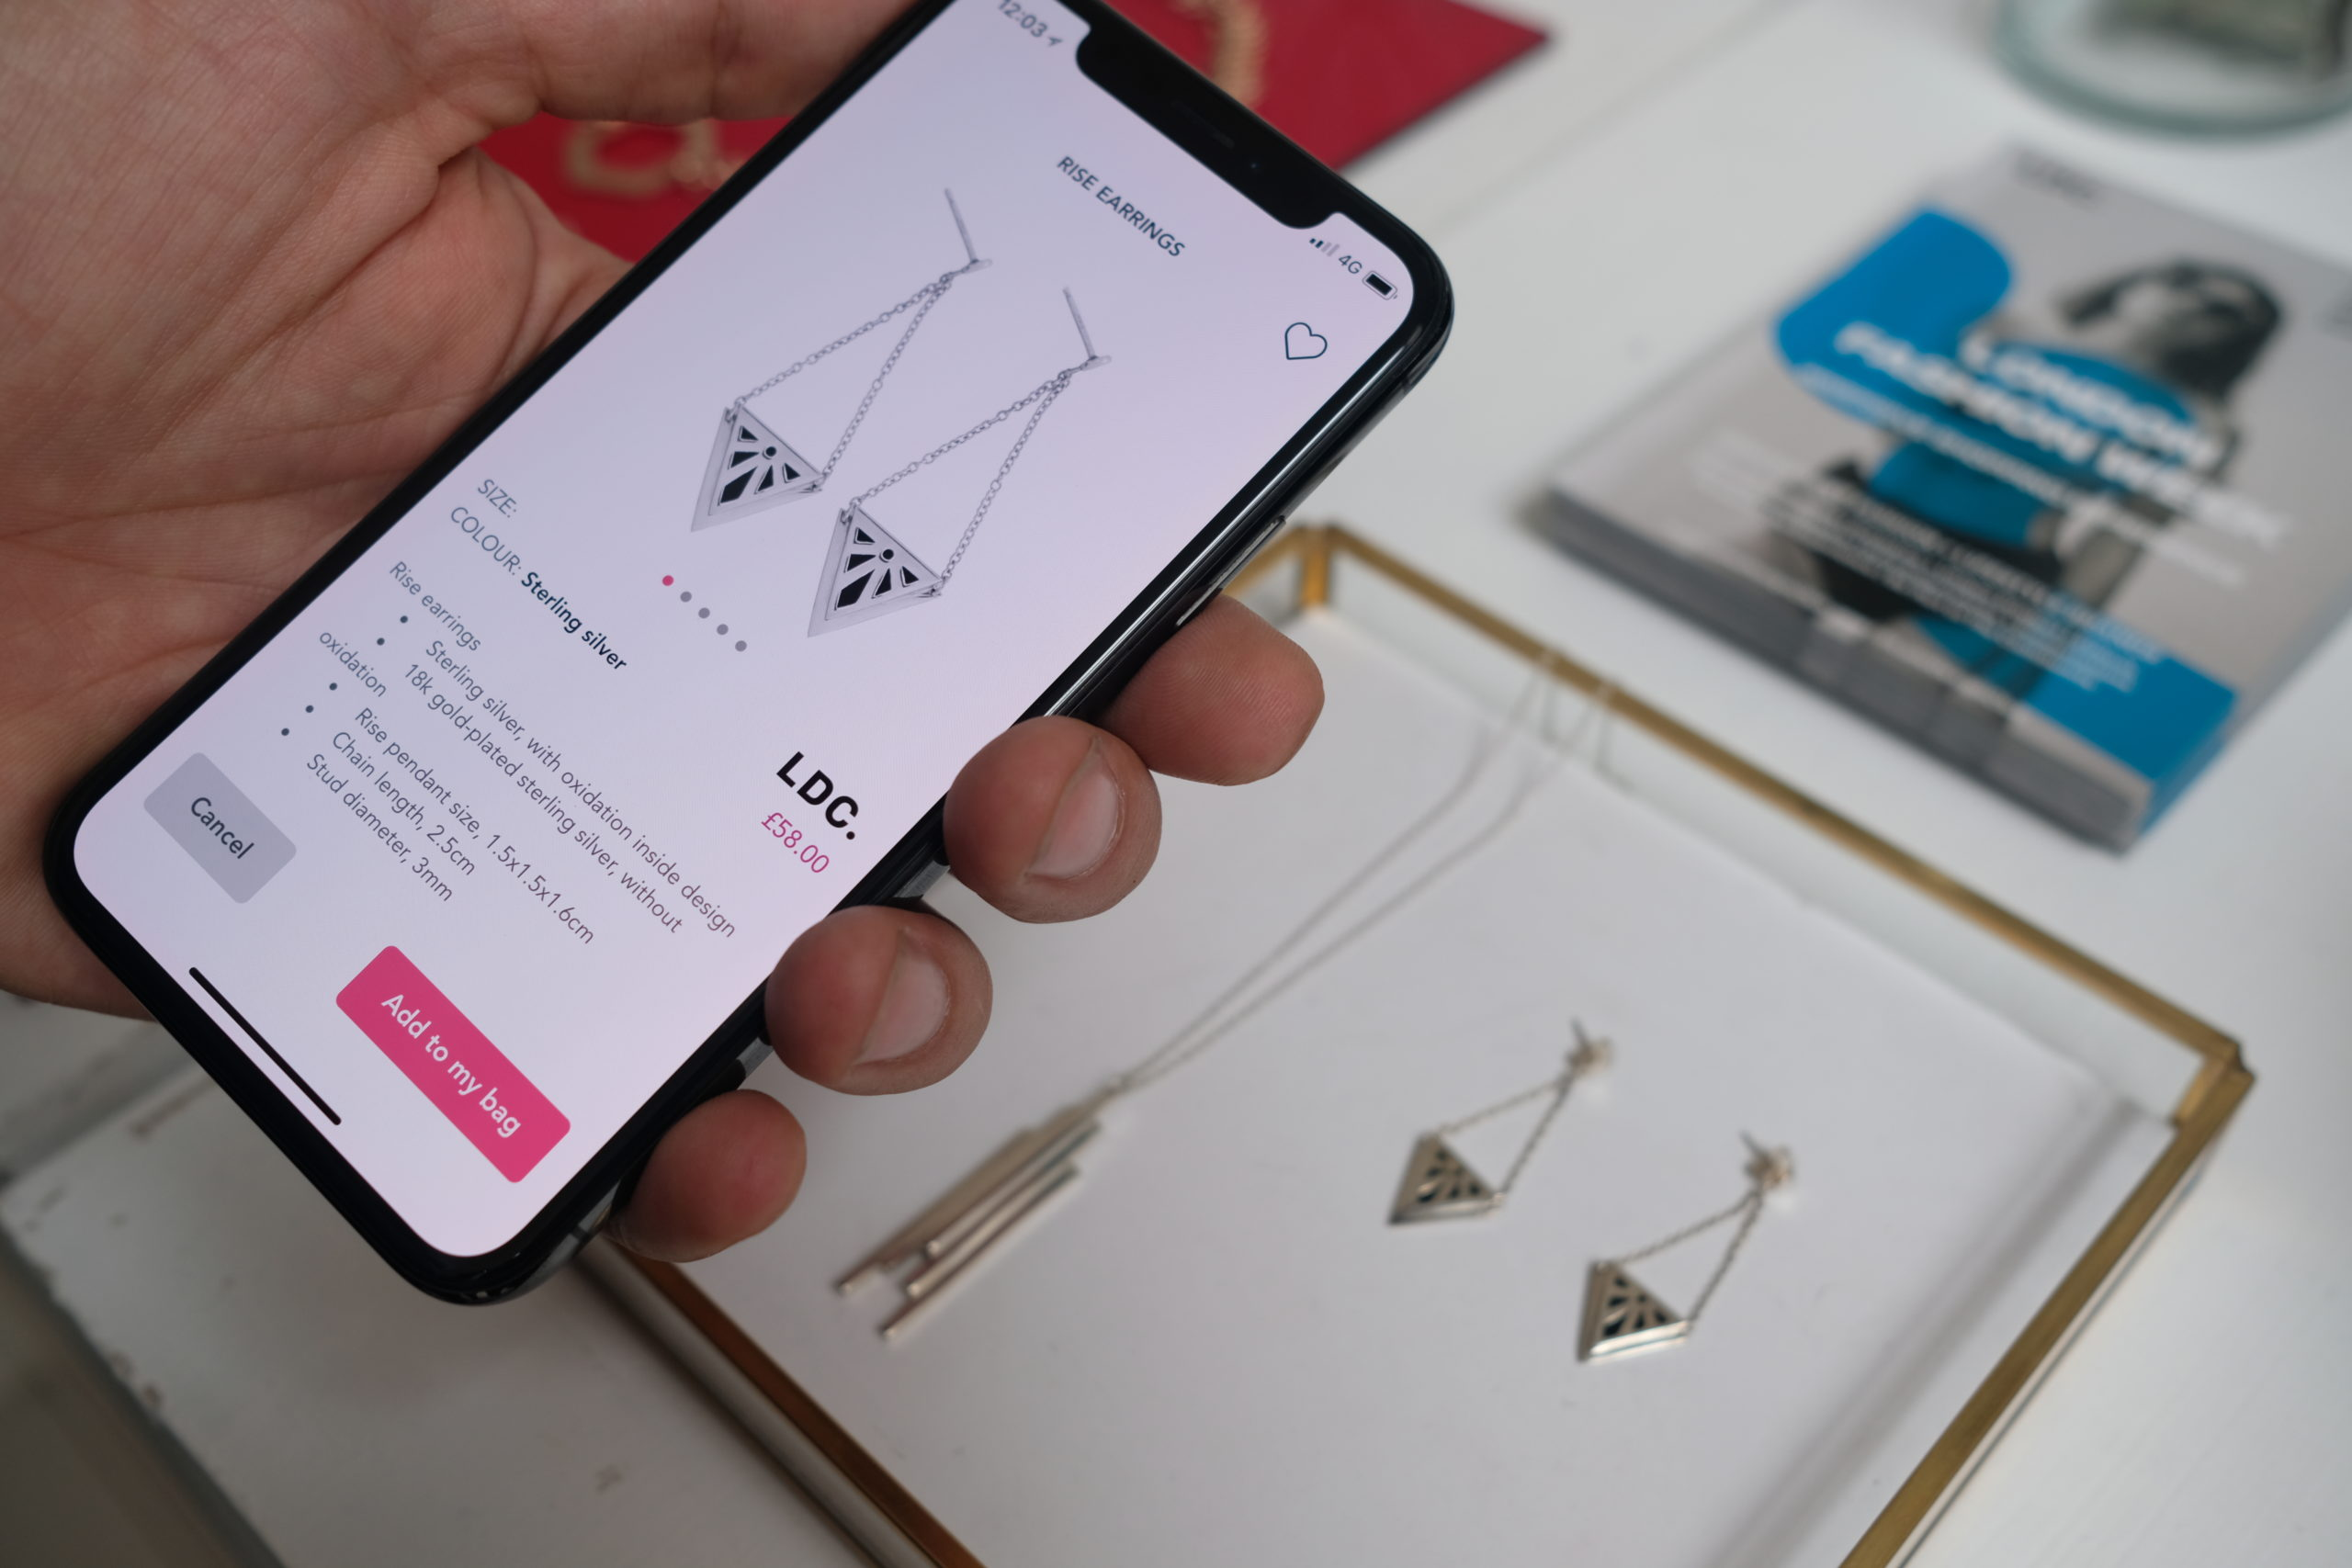 Mobile phone hovering over earnings to find more information